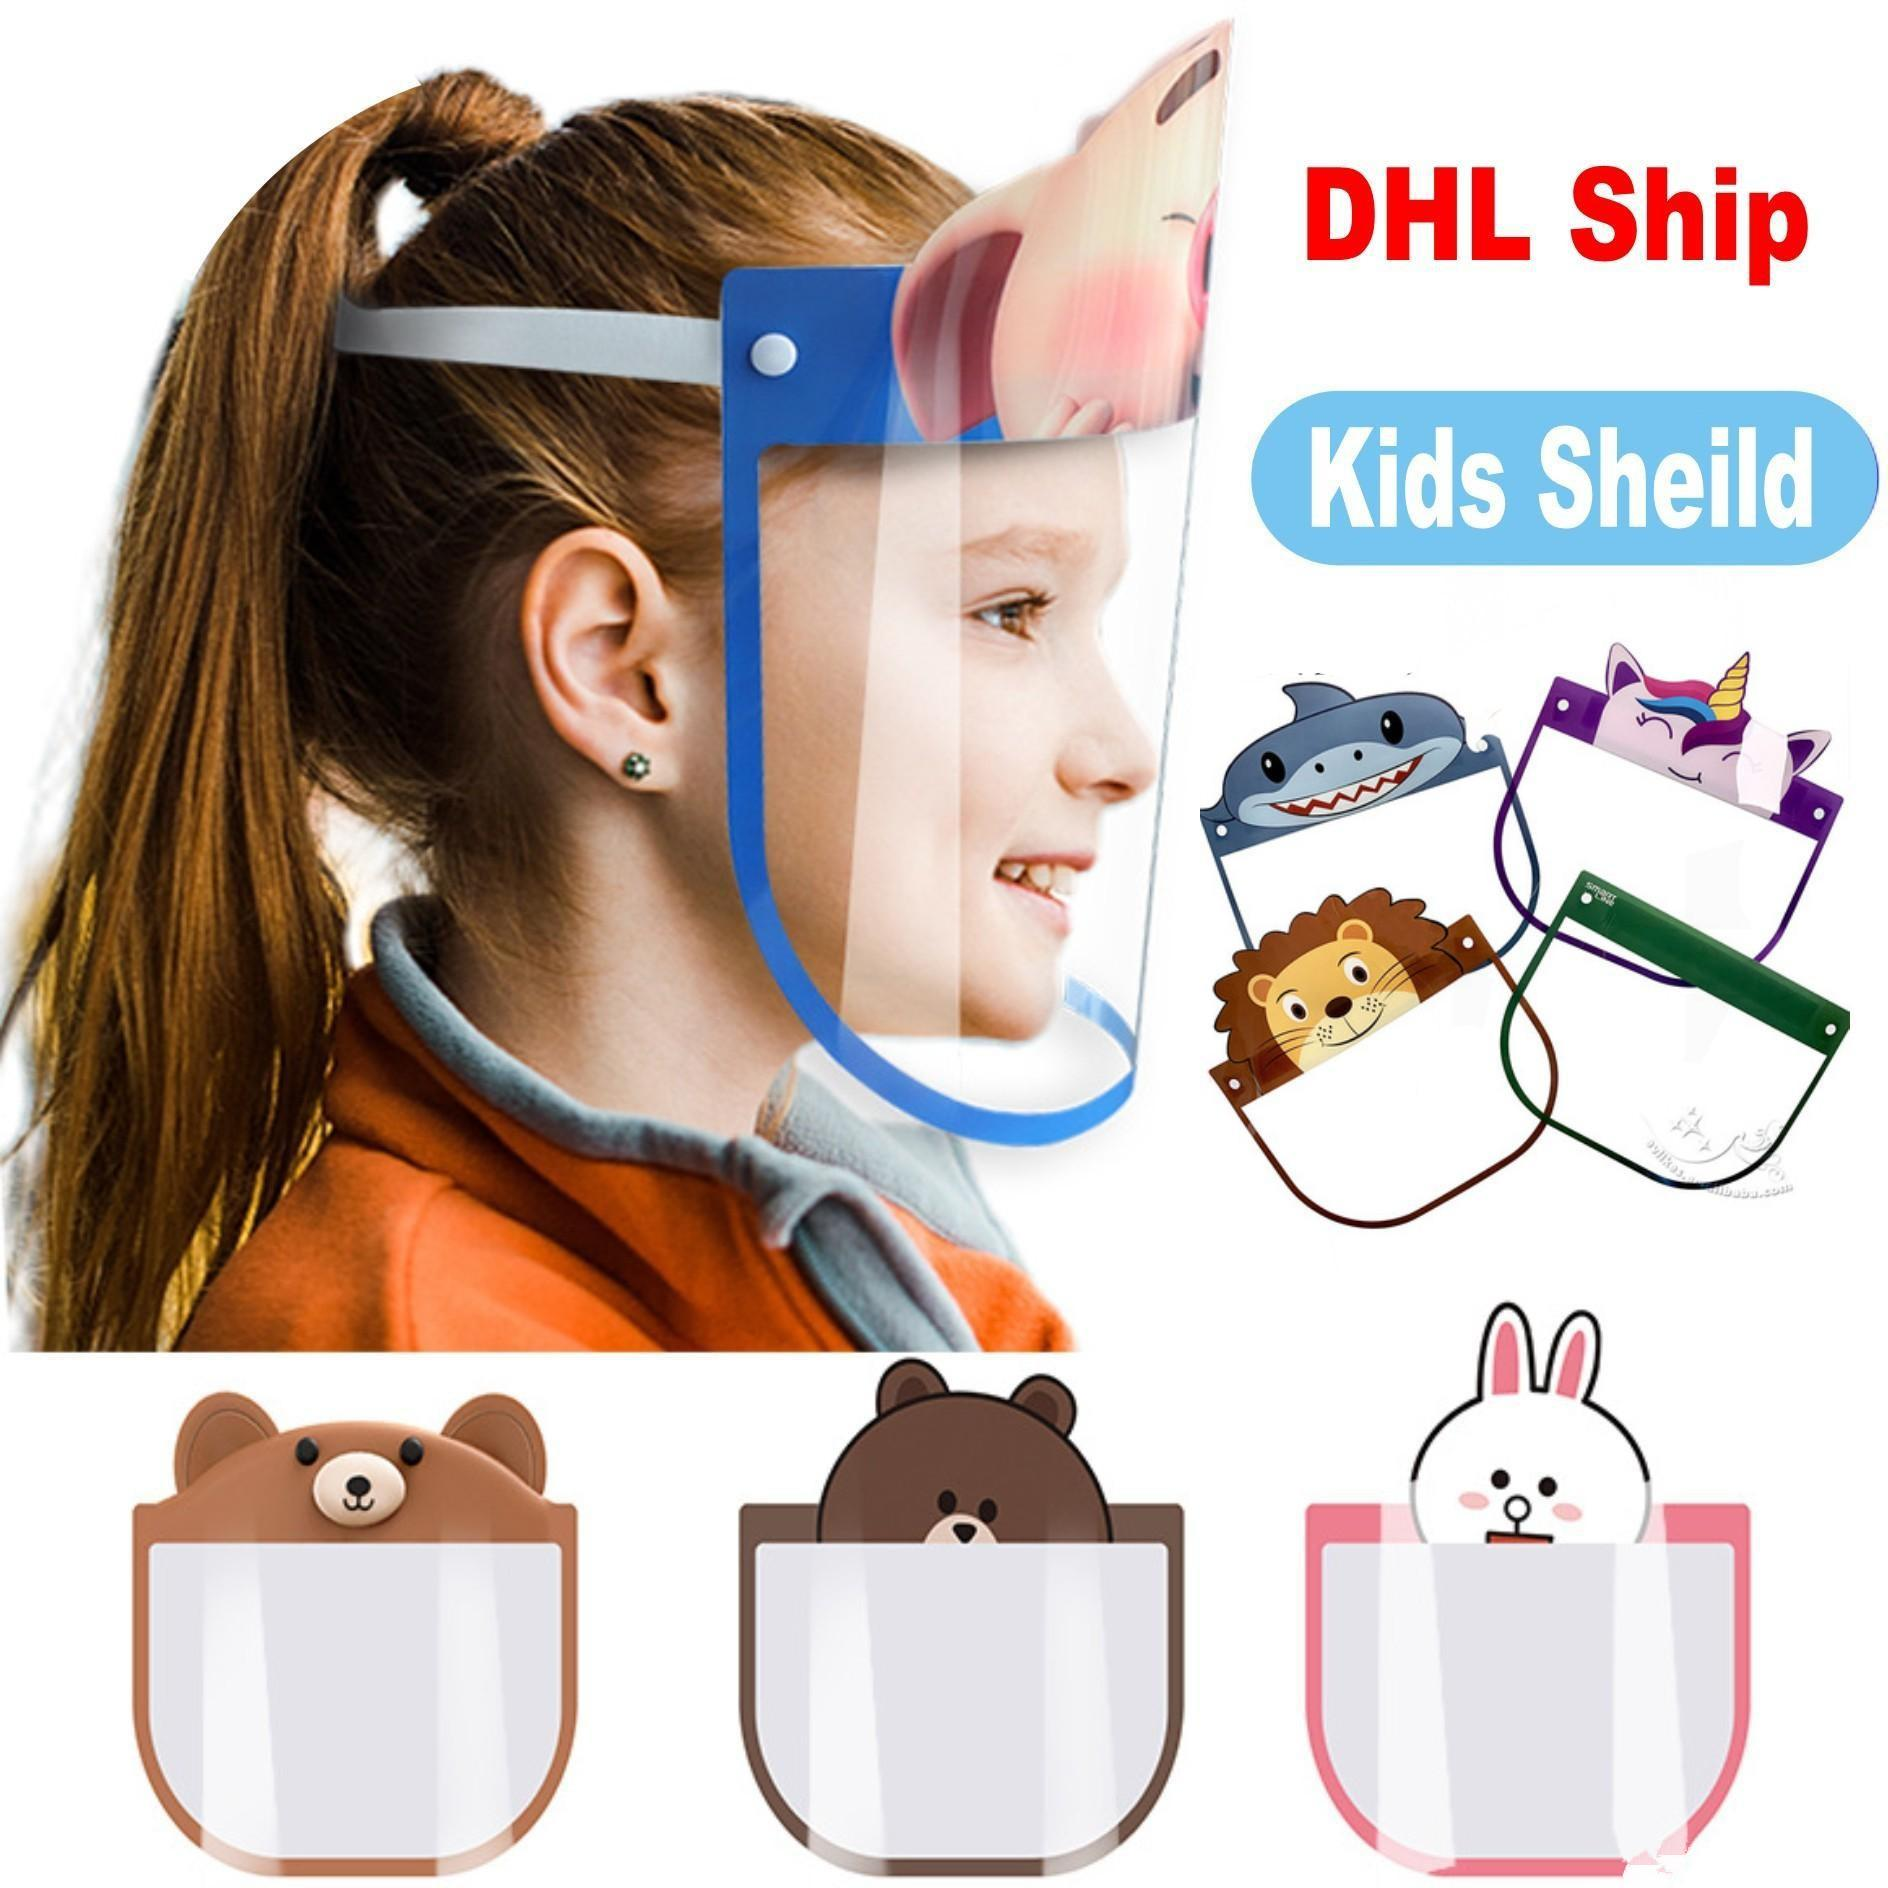 PET Kids Cartoon Face Shield With Glasses Safety Children Protective Mask Full Face Anti-Fog Isolation Splash-proof Cartoon Party Mask